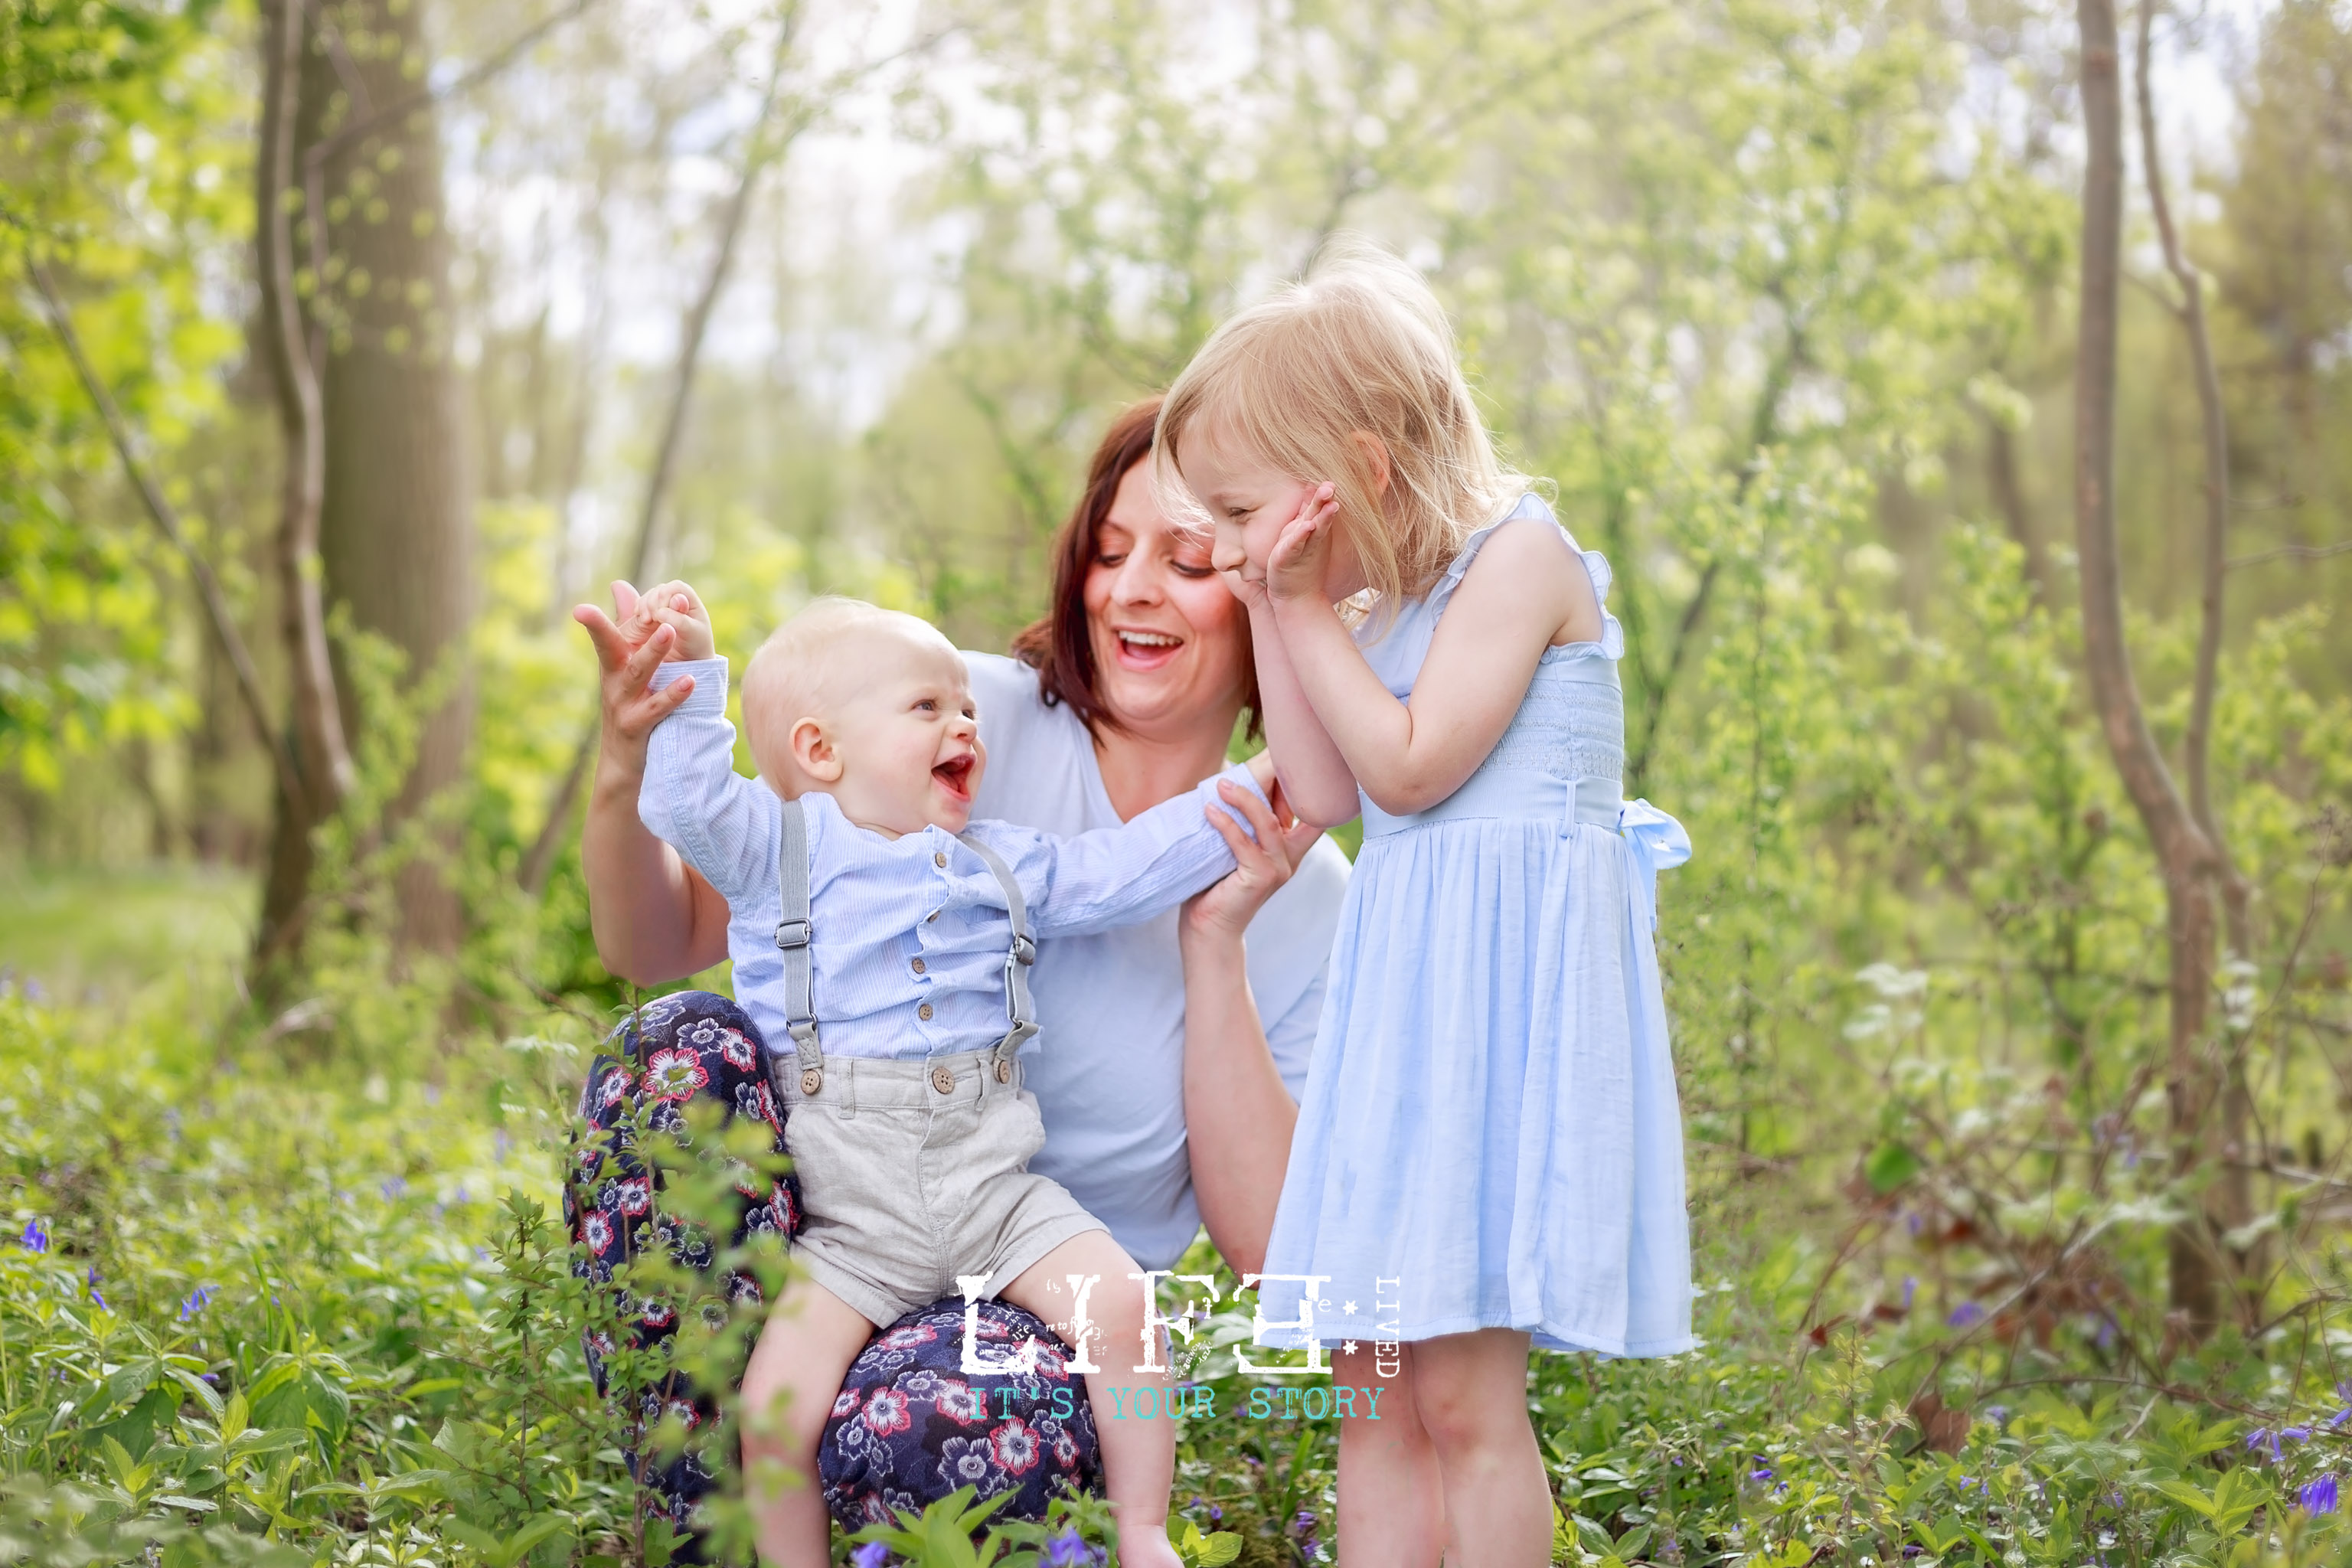 lincoln_family_photographer_bluebells-10-11